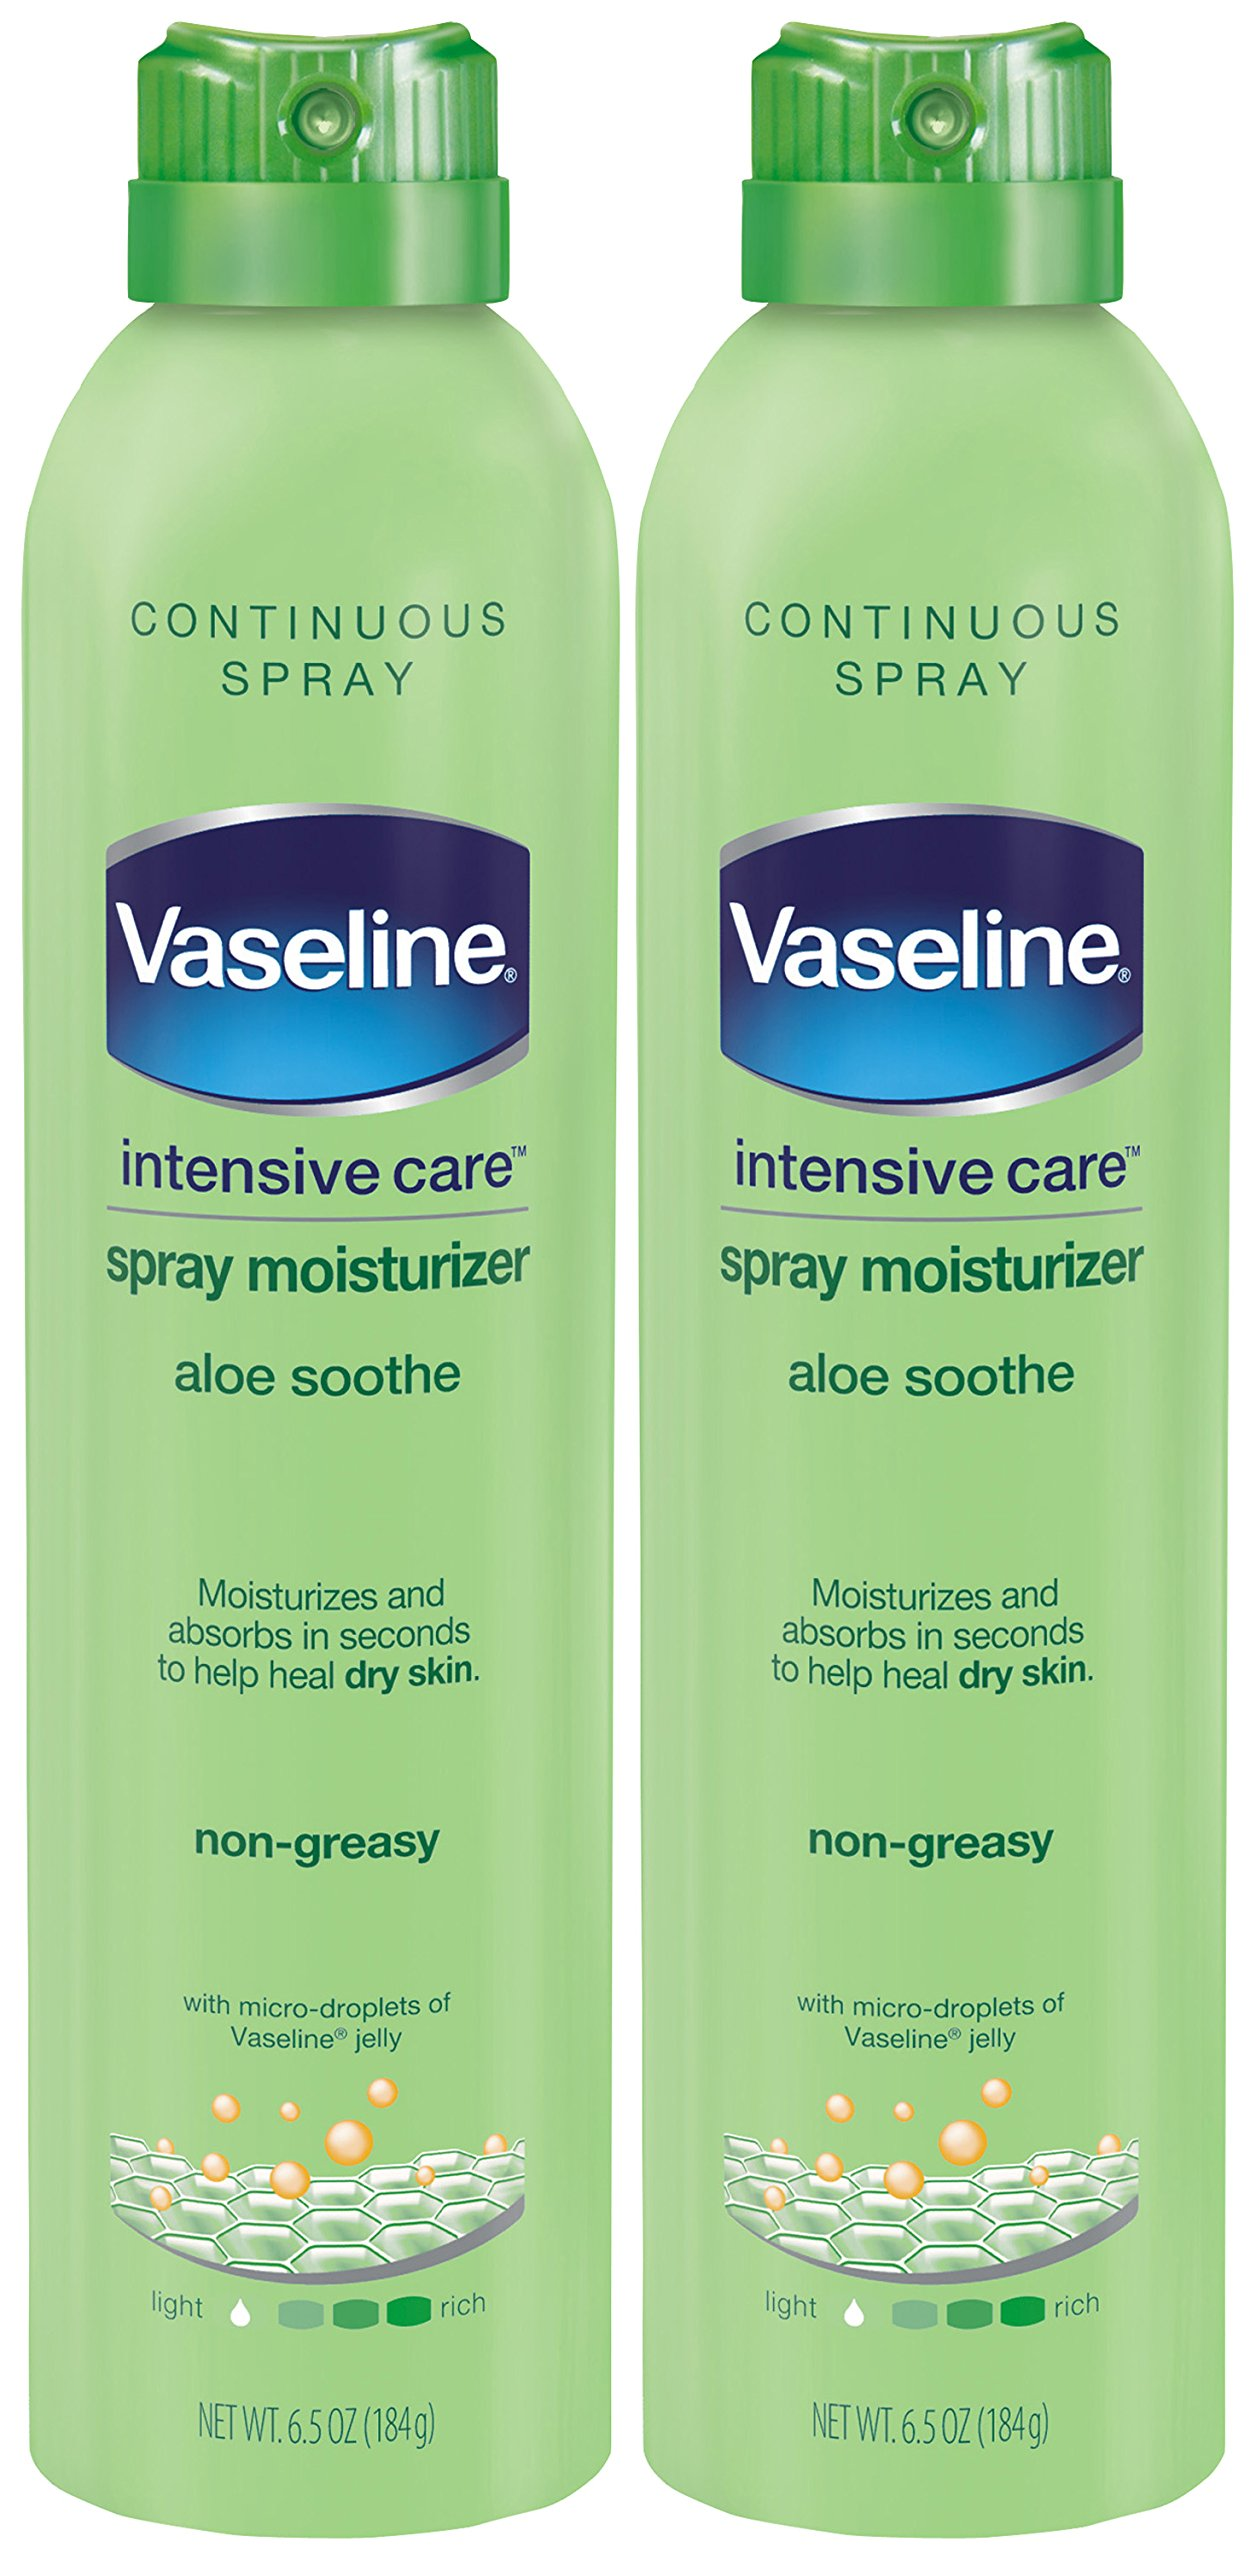 Vaseline Intensive Care Spray Moisturizer, Aloe Soothe 6.5 oz, Twin Pack by VASELINE HBL